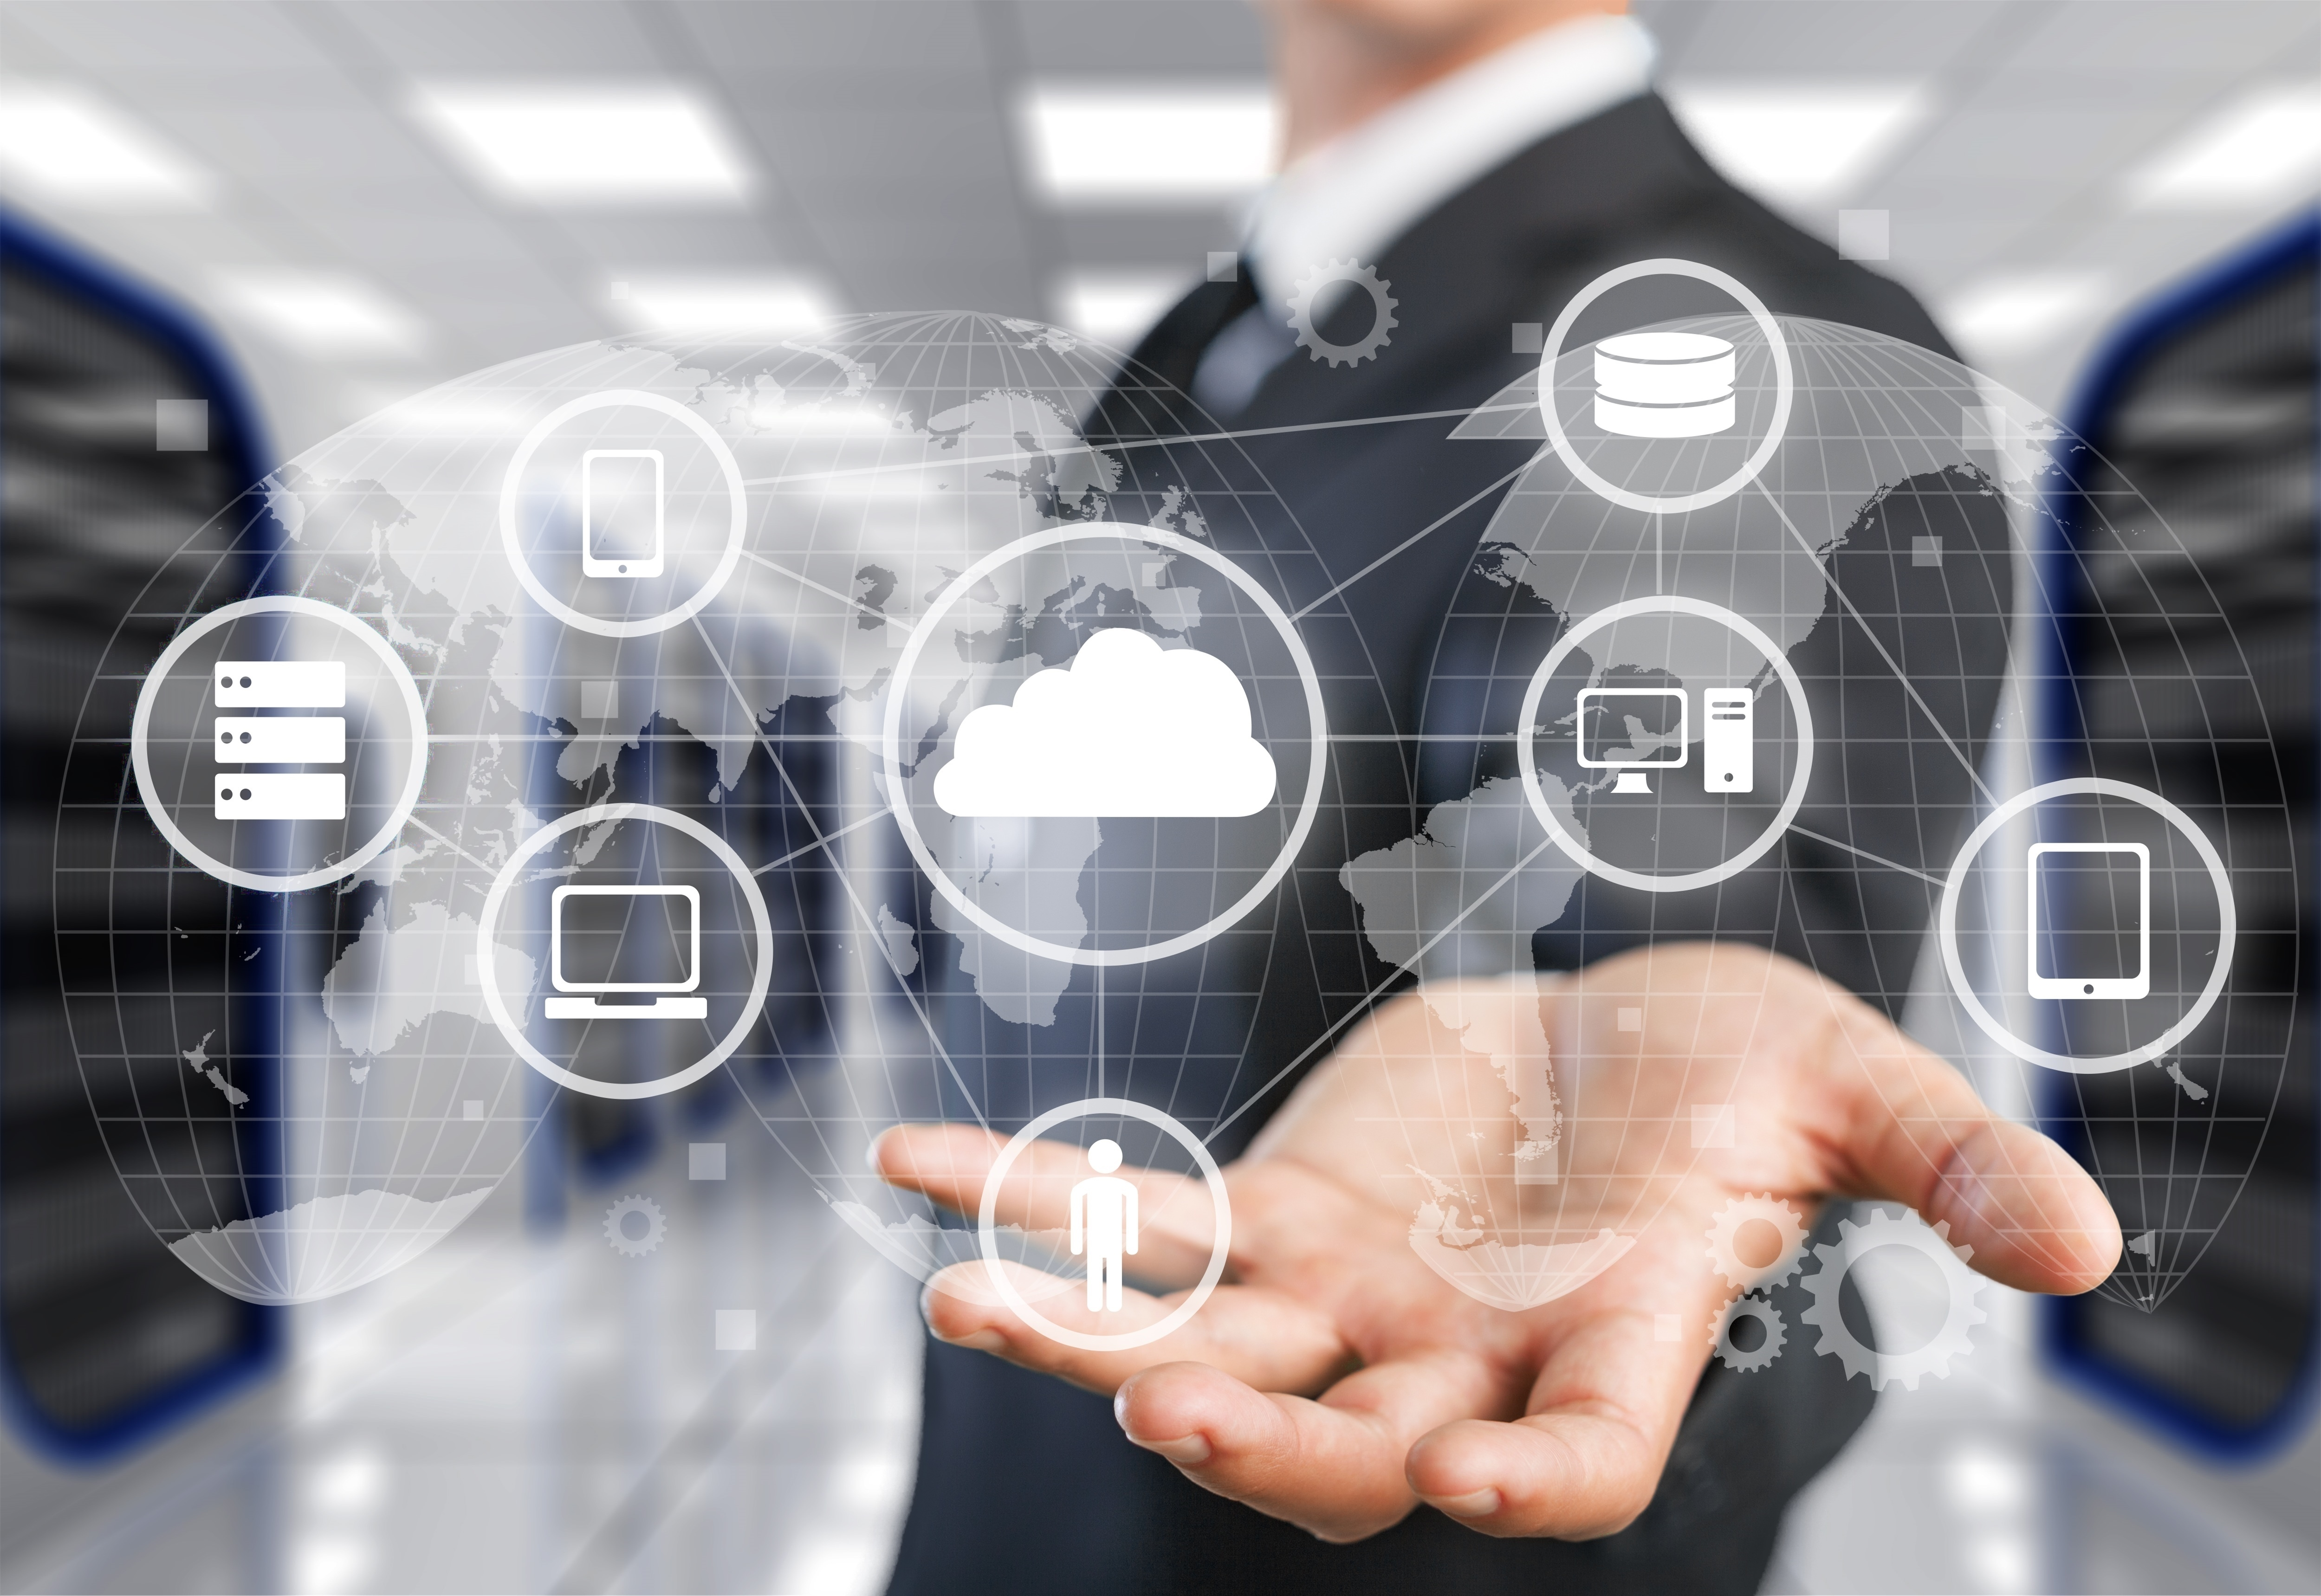 Create a professional PowerPoint presentation about Cloud Computing in a short time.